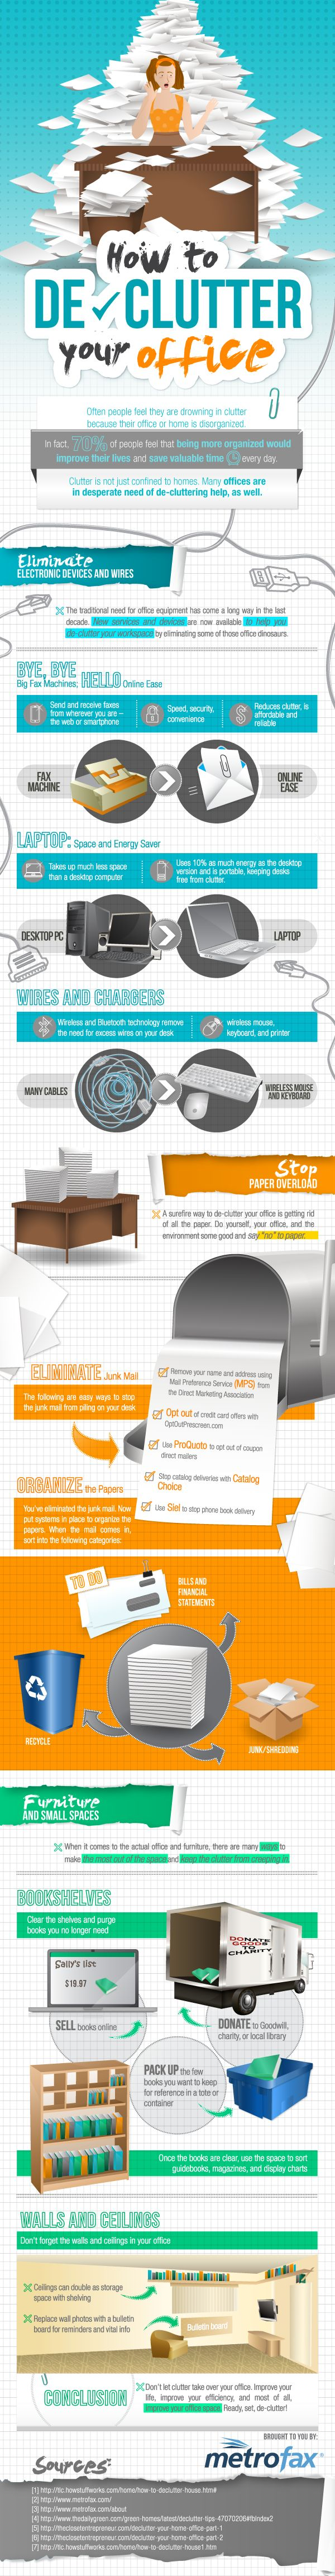 The busier you get, the messier your office gets. We're fairly certain that is a proven fact… Did you know that 70% of people feel that being more organized would improve their quality of life and save valuable time? Check out the infographic below to find out how you can reduce clutter and save time.